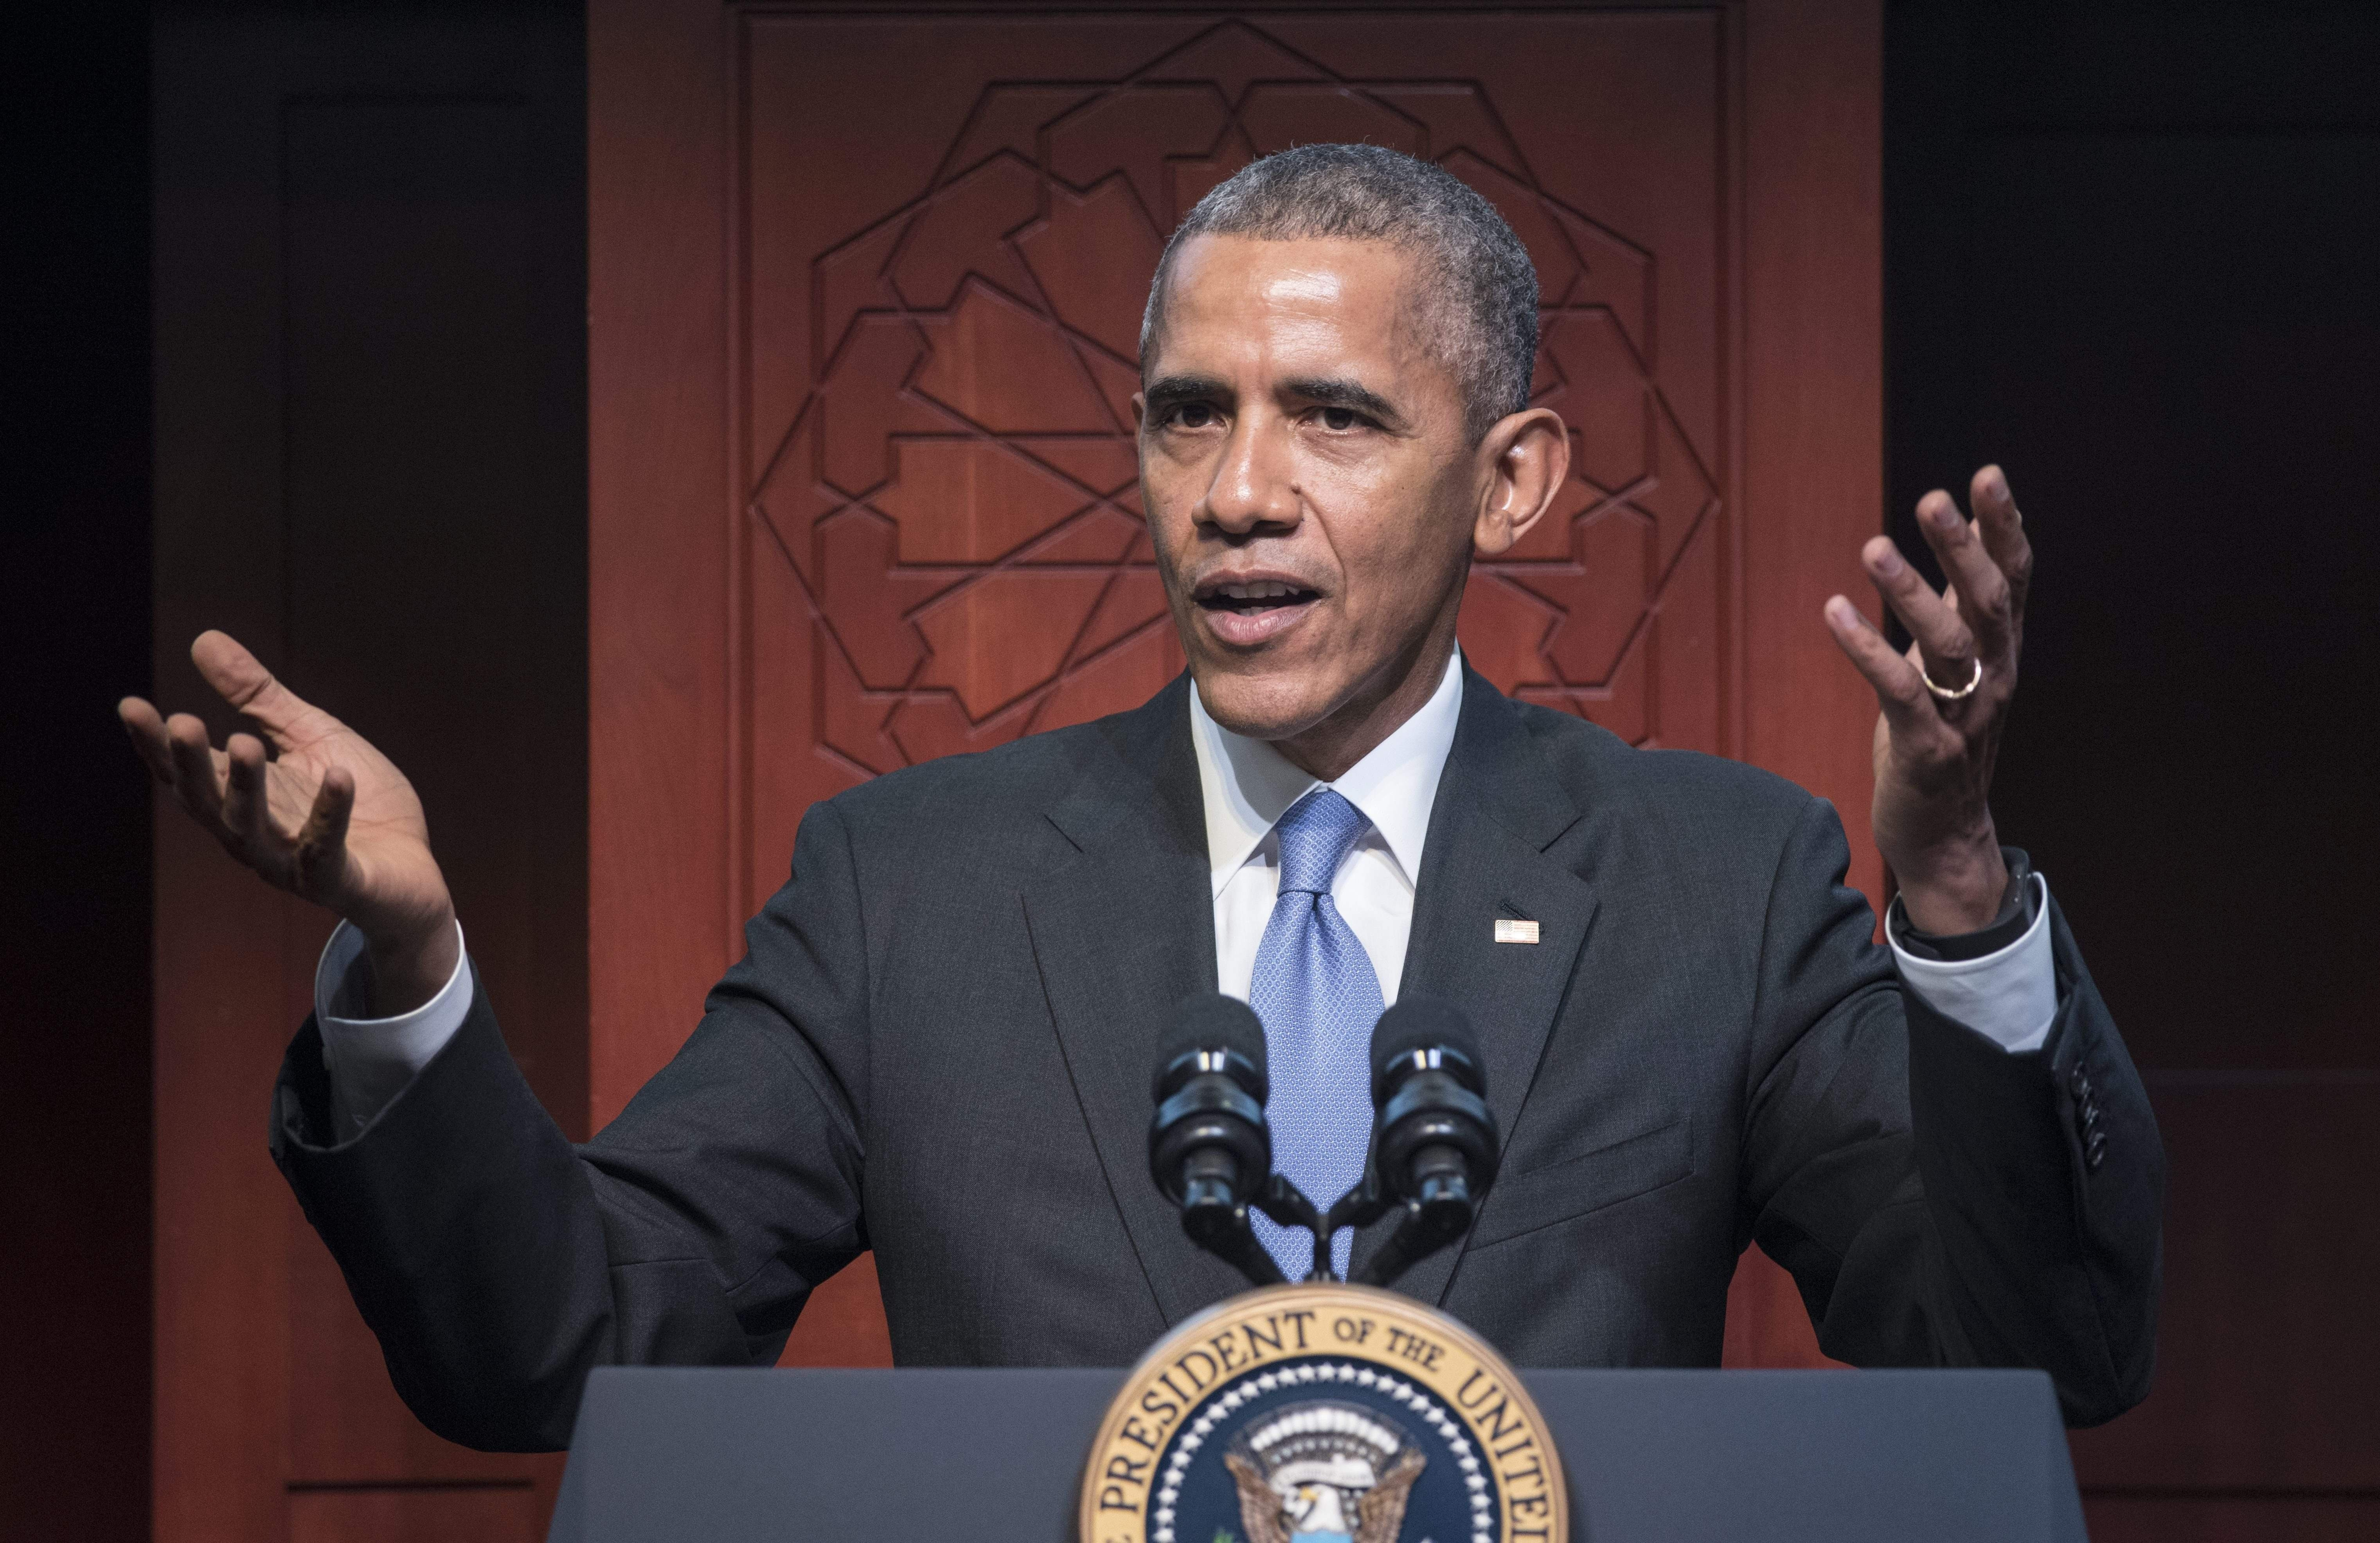 US President Barack Obama speaks at the Islamic Society of Baltimore, in Windsor Mill, Maryland on February 3, 2016. Obama offered an impassioned rebuttal of 'inexcusable' Republican election rhetoric against Muslims Wednesday, on his first trip to an American mosque since becoming president seven years ago. / AFP / MANDEL NGAN        (Photo credit should read MANDEL NGAN/AFP/Getty Images)